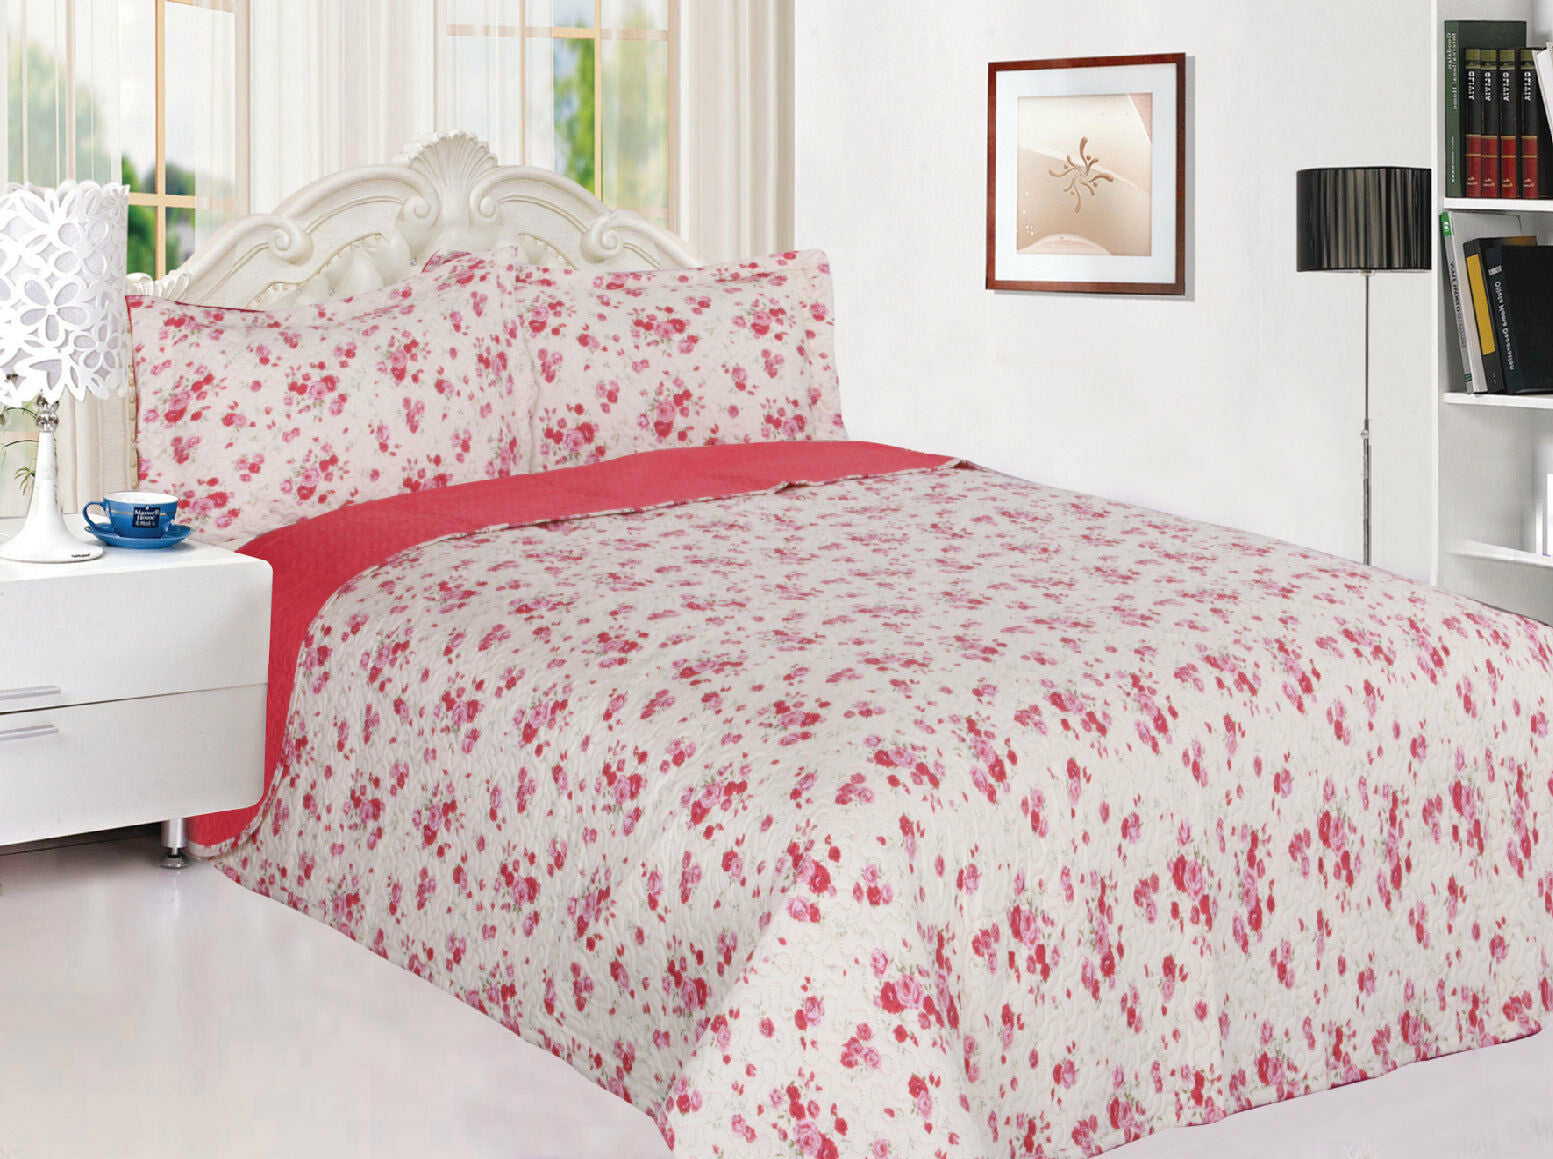 Floral 3-Piece Reversible Quilted Bedspread Coverlet Bedding Set - Pink